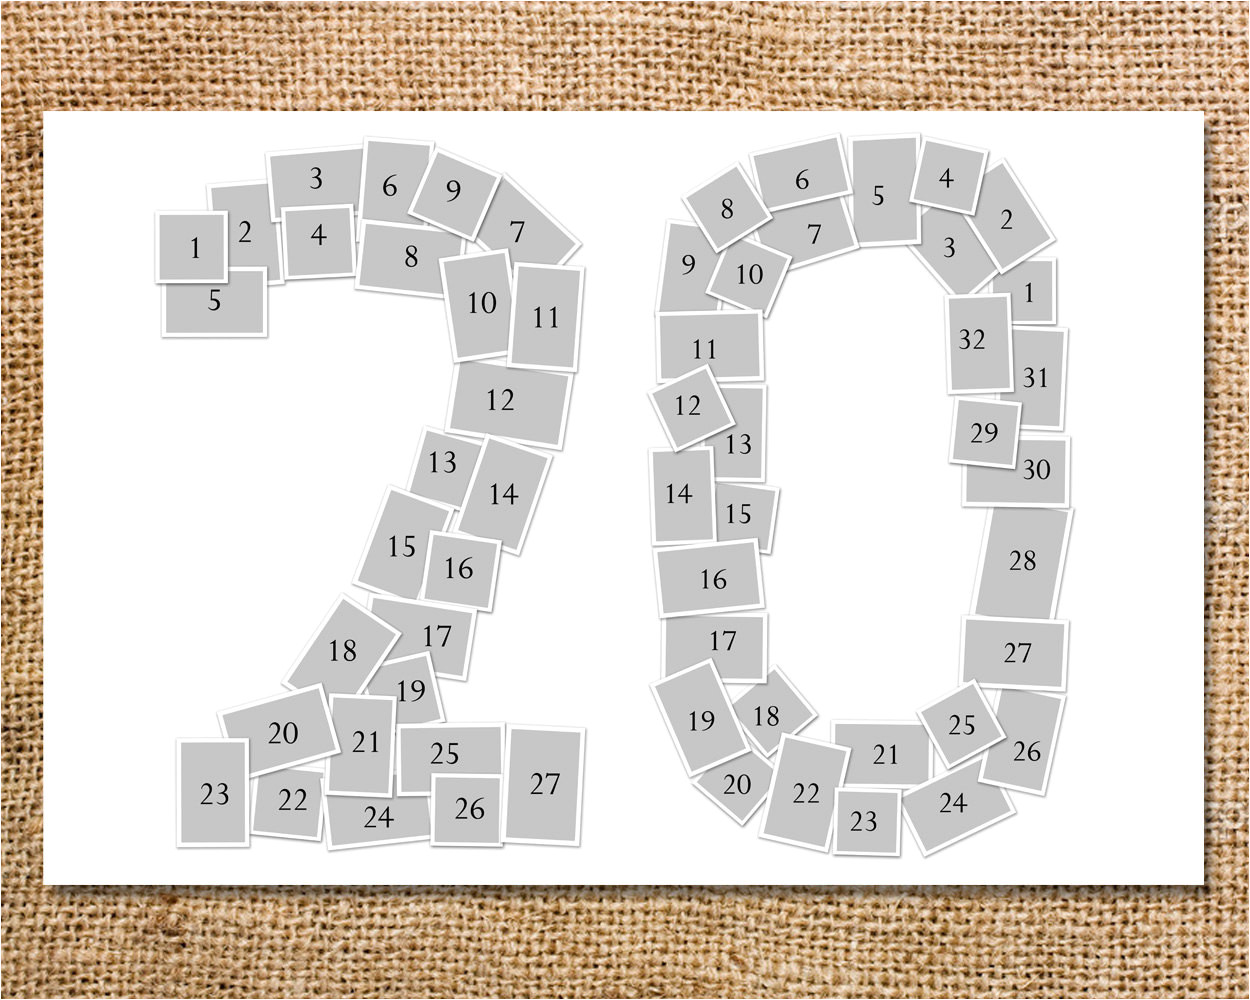 double digit number photo collage